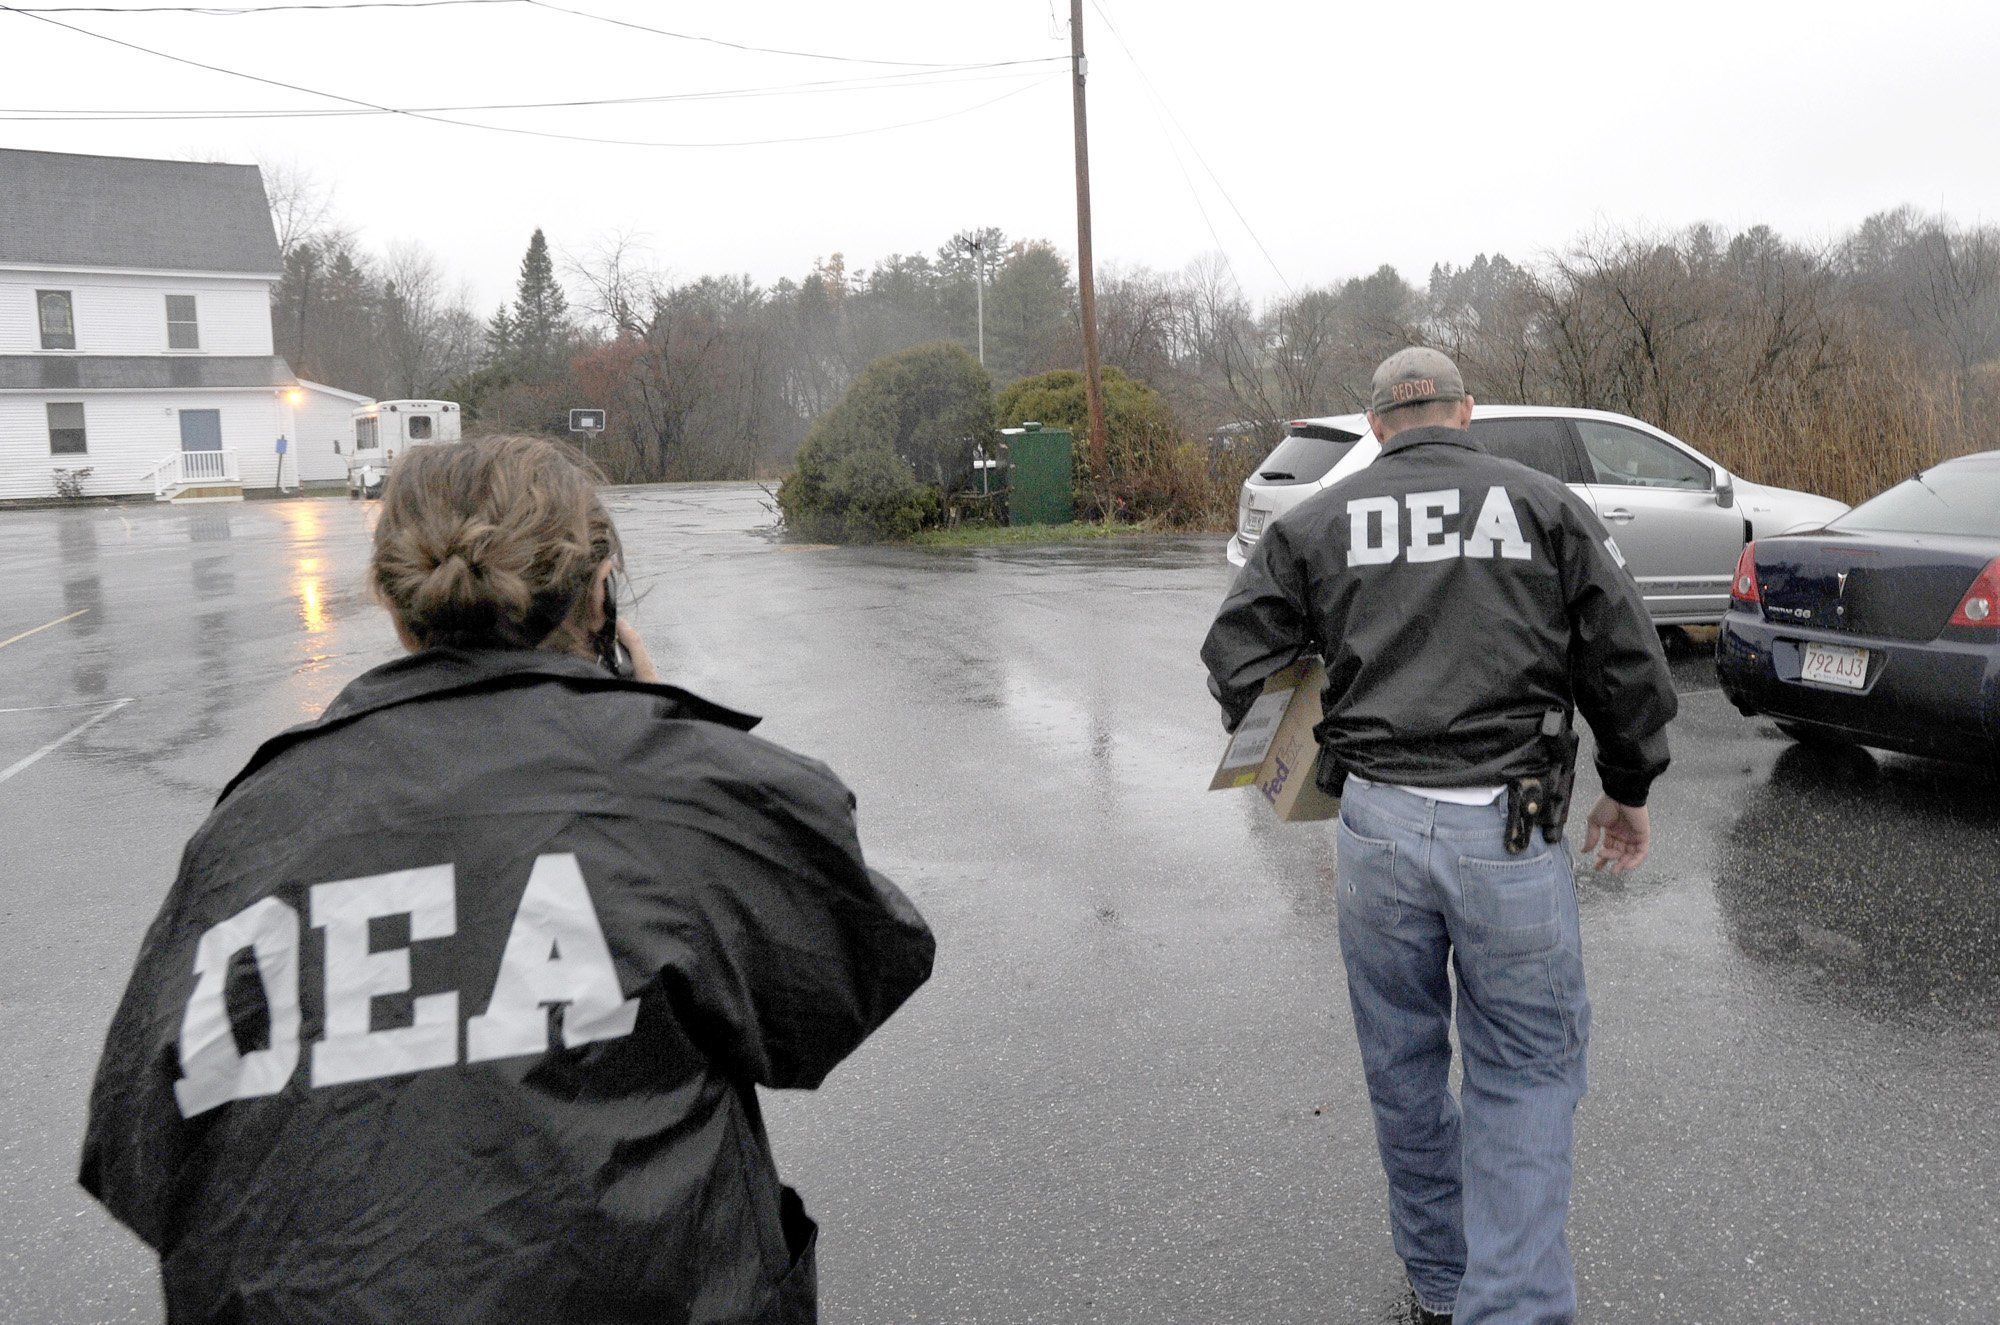 John Patriquin /Staff Photographer; Wed., 11/17/10. DEA agents leave the offices of Dr. John Perry at Atlantic Foot & Ankle Center at 1711 Congress st. in Portland this morning carrying small boxes. (Photo by John Patriquin/Portland Press Herald via Getty Images)